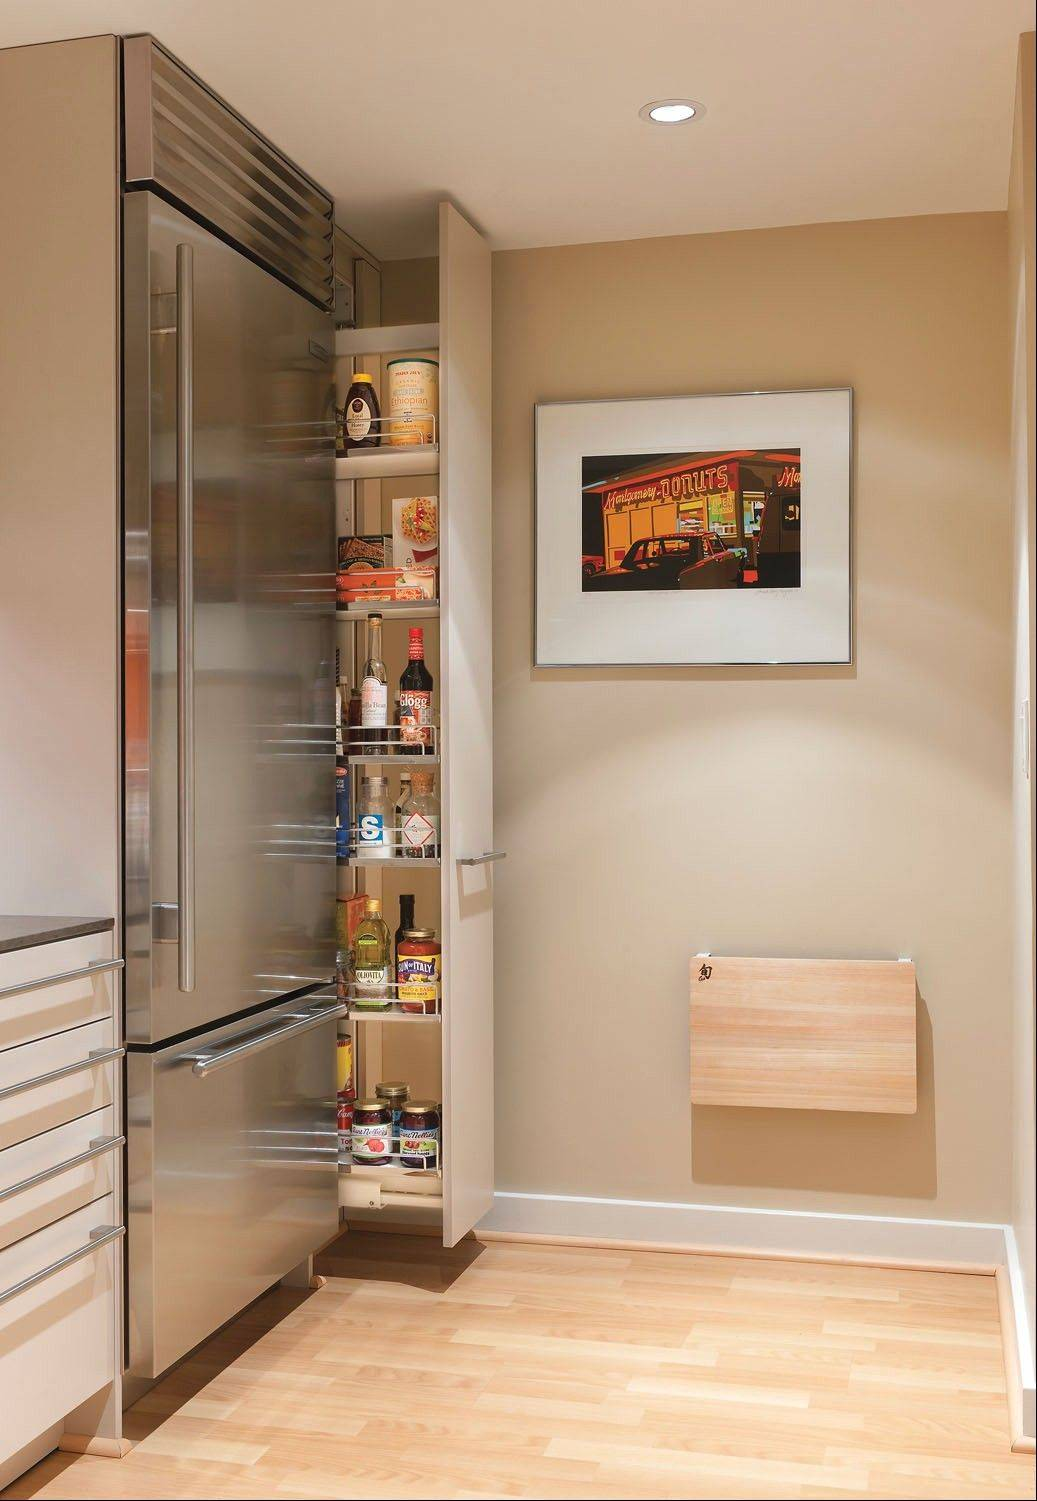 Drawers and pullout pantries, like the one at right, make the most of awkward spaces. They allow easy access to the back of the storage area.